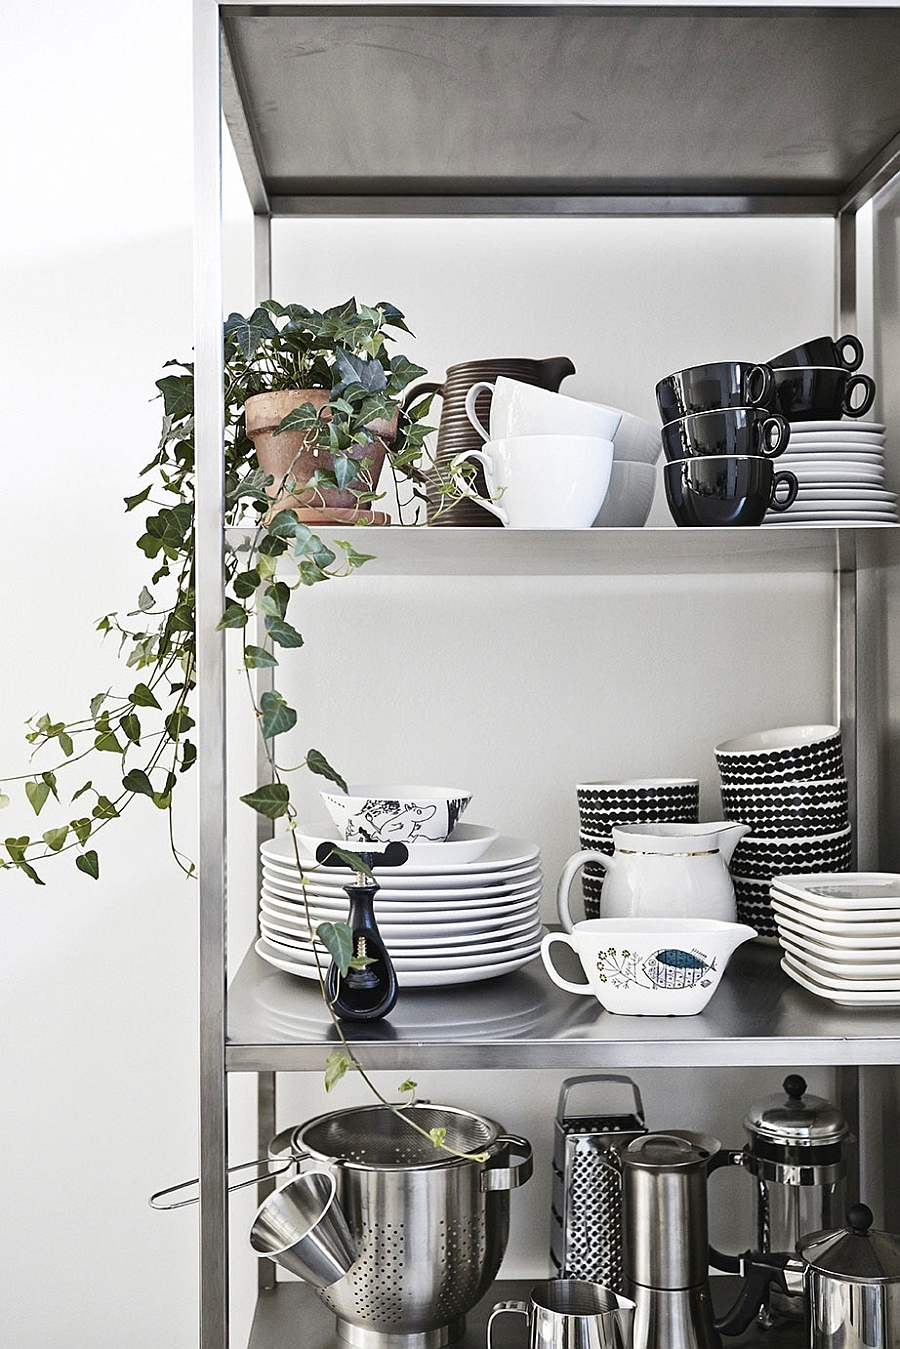 Using kitchenware to create a wonderful display